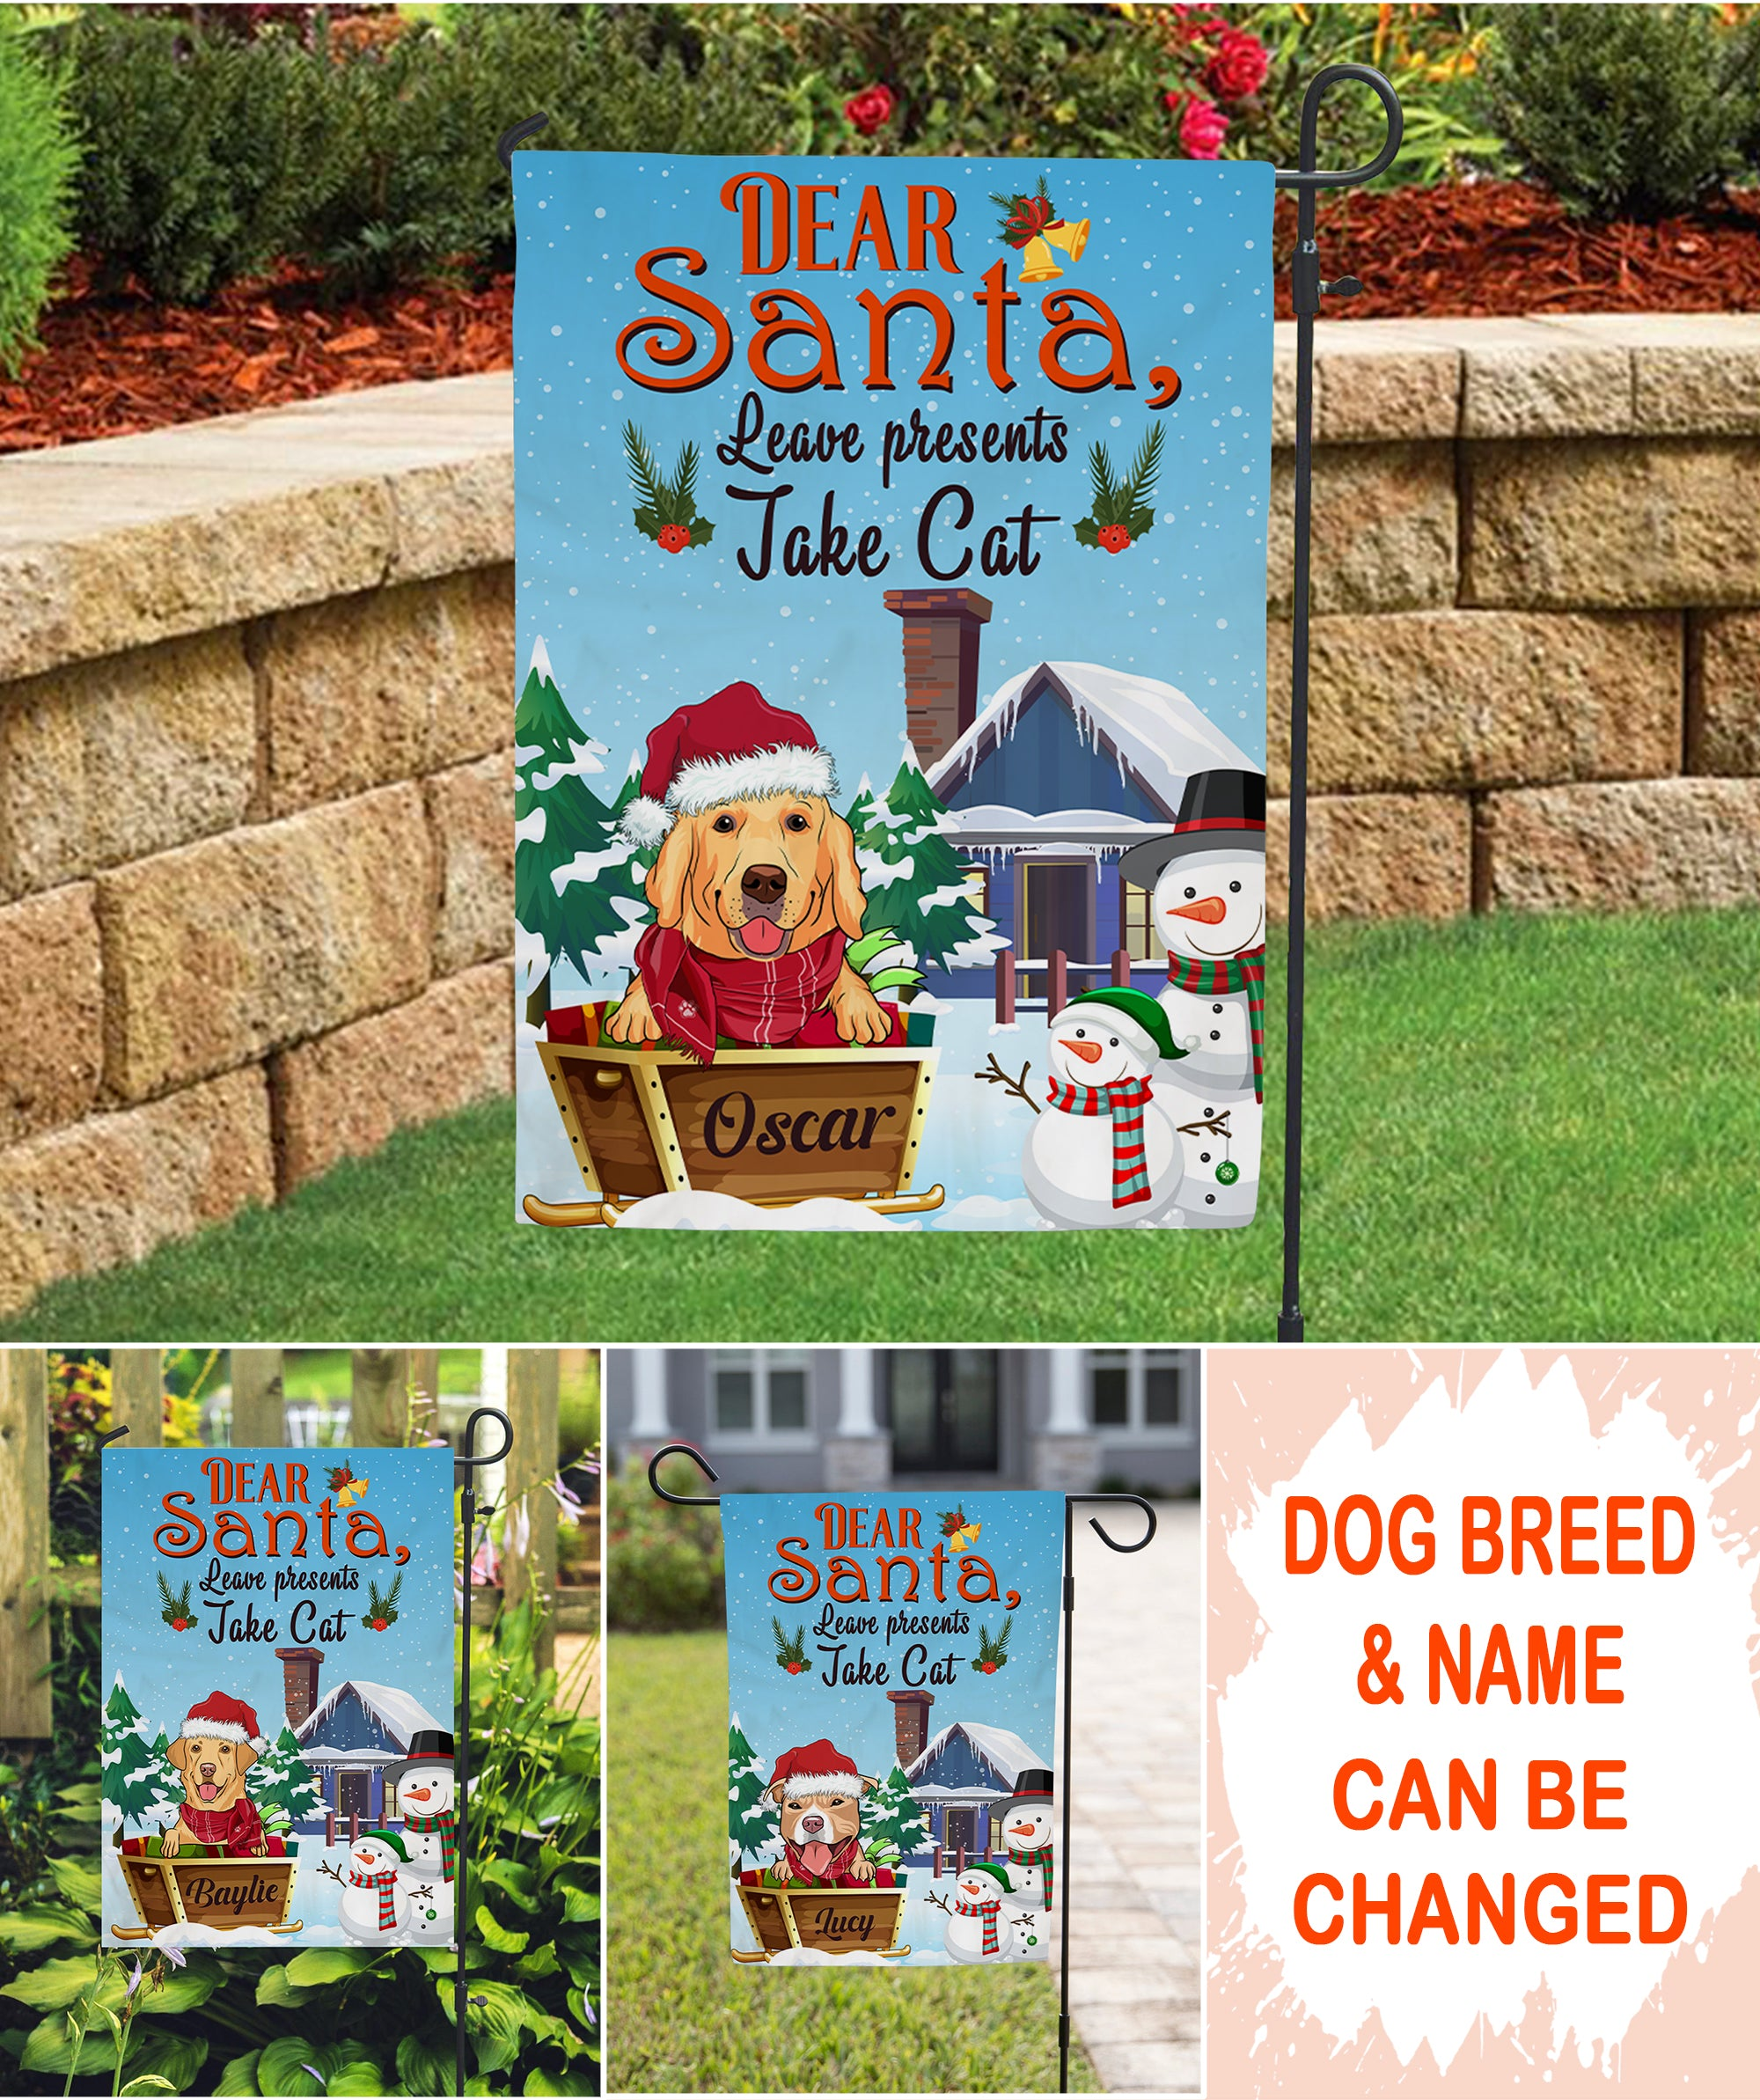 Dear Santa, Leave Presents Take Cat - Personalized Custom Garden Flag - Christmas Gifts